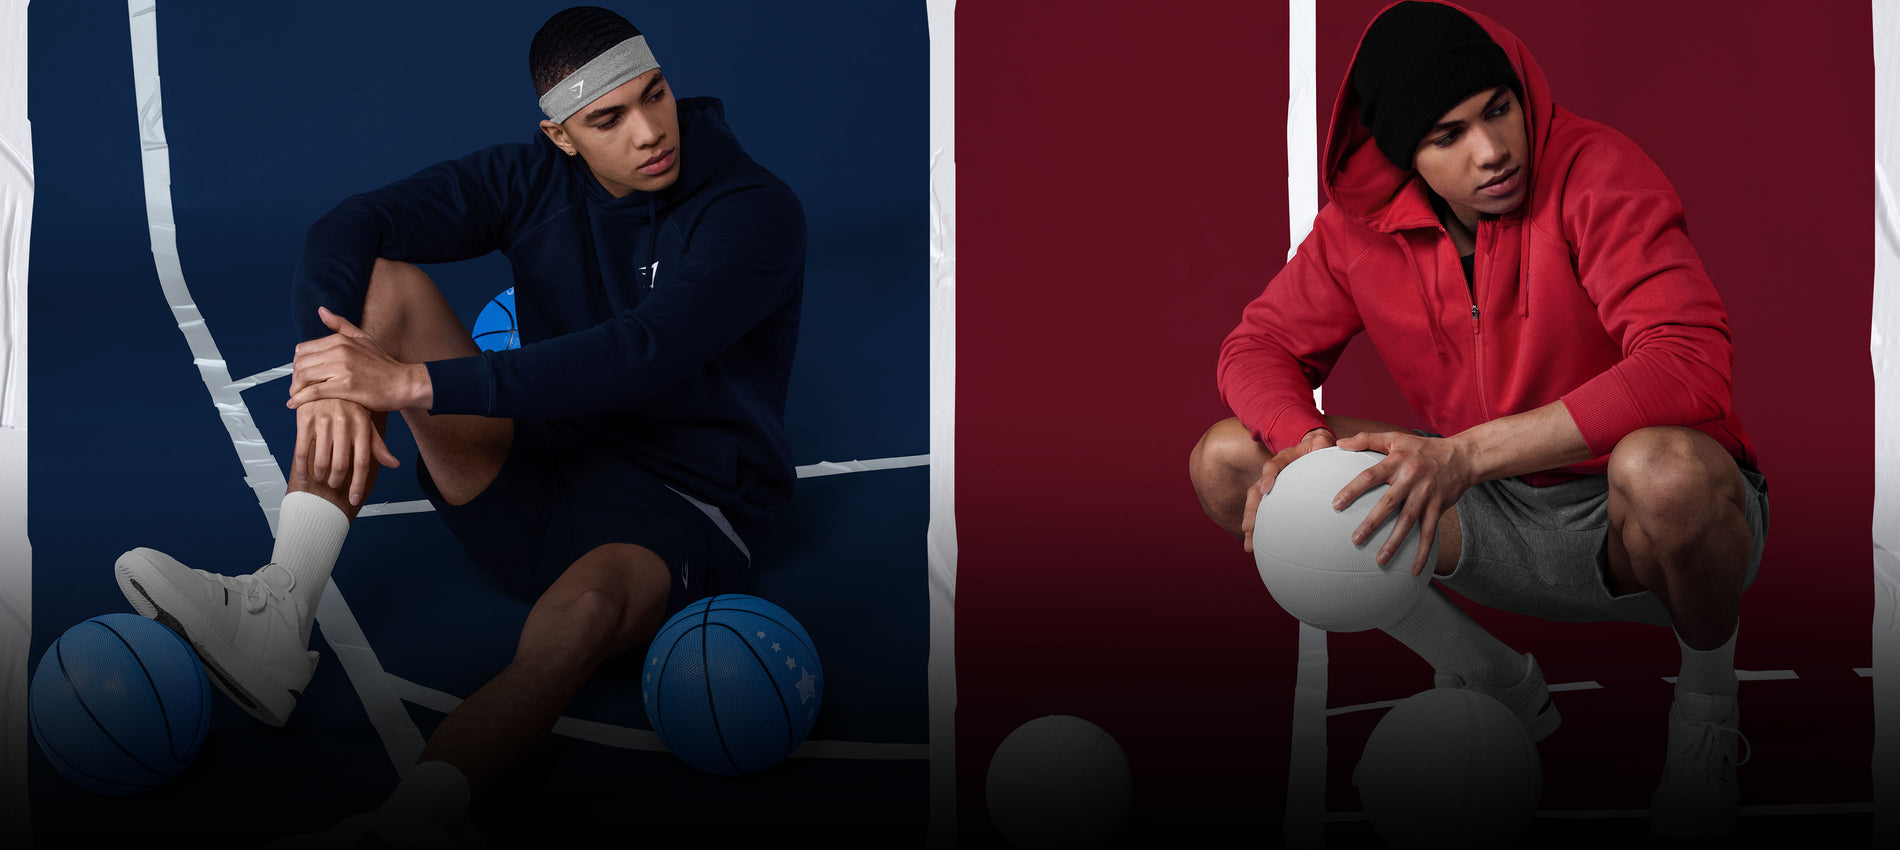 Male posing in the Crest Volcanic Red Hoodie and Black shorts against a basketball court background.